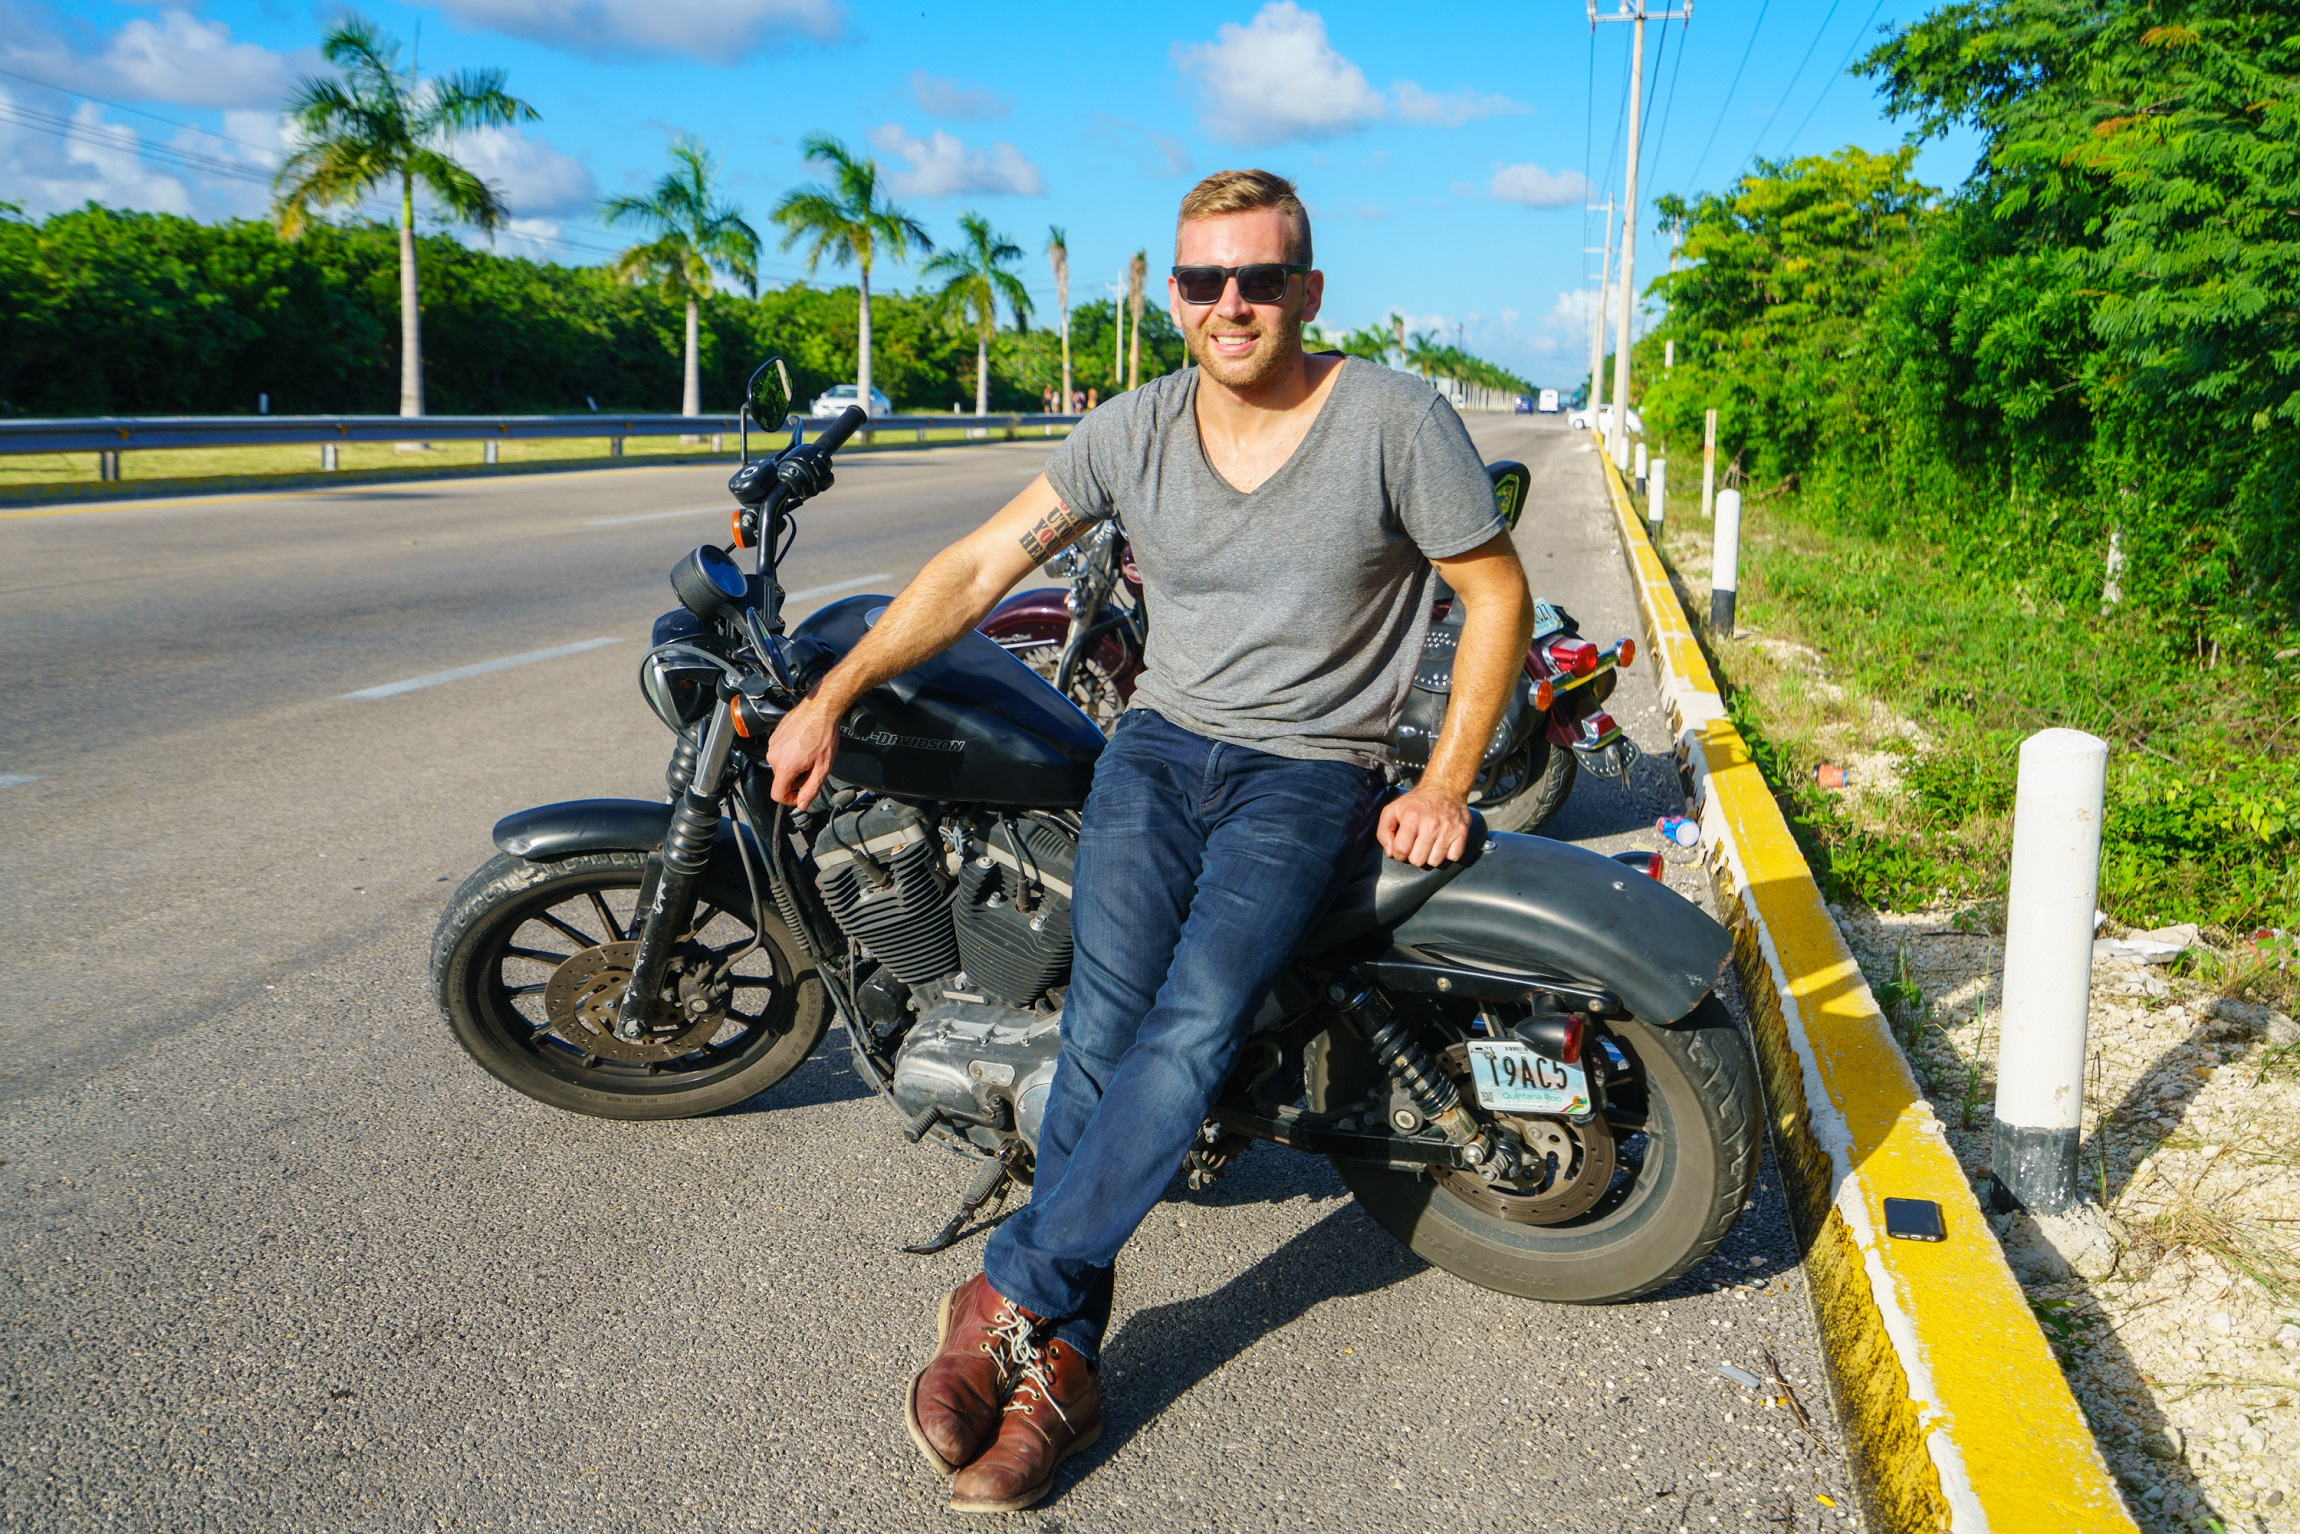 Motorcycle Road Trip >> Ridin Dirty In The Yucatan With Matt Karsten From The Expert Vagabond